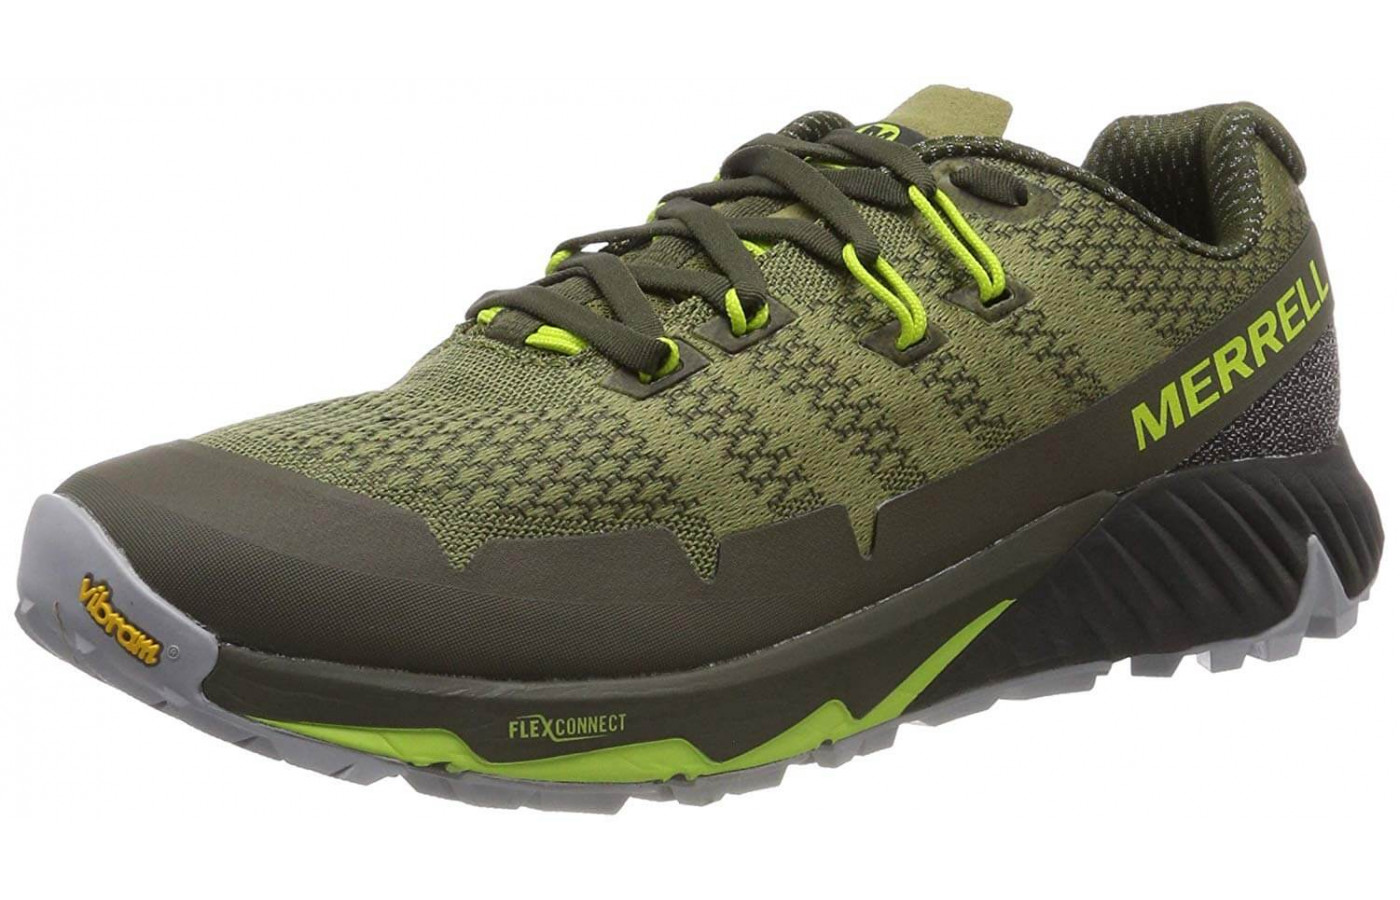 biggest discount promo codes double coupon Merrell Agility Peak Flex 3